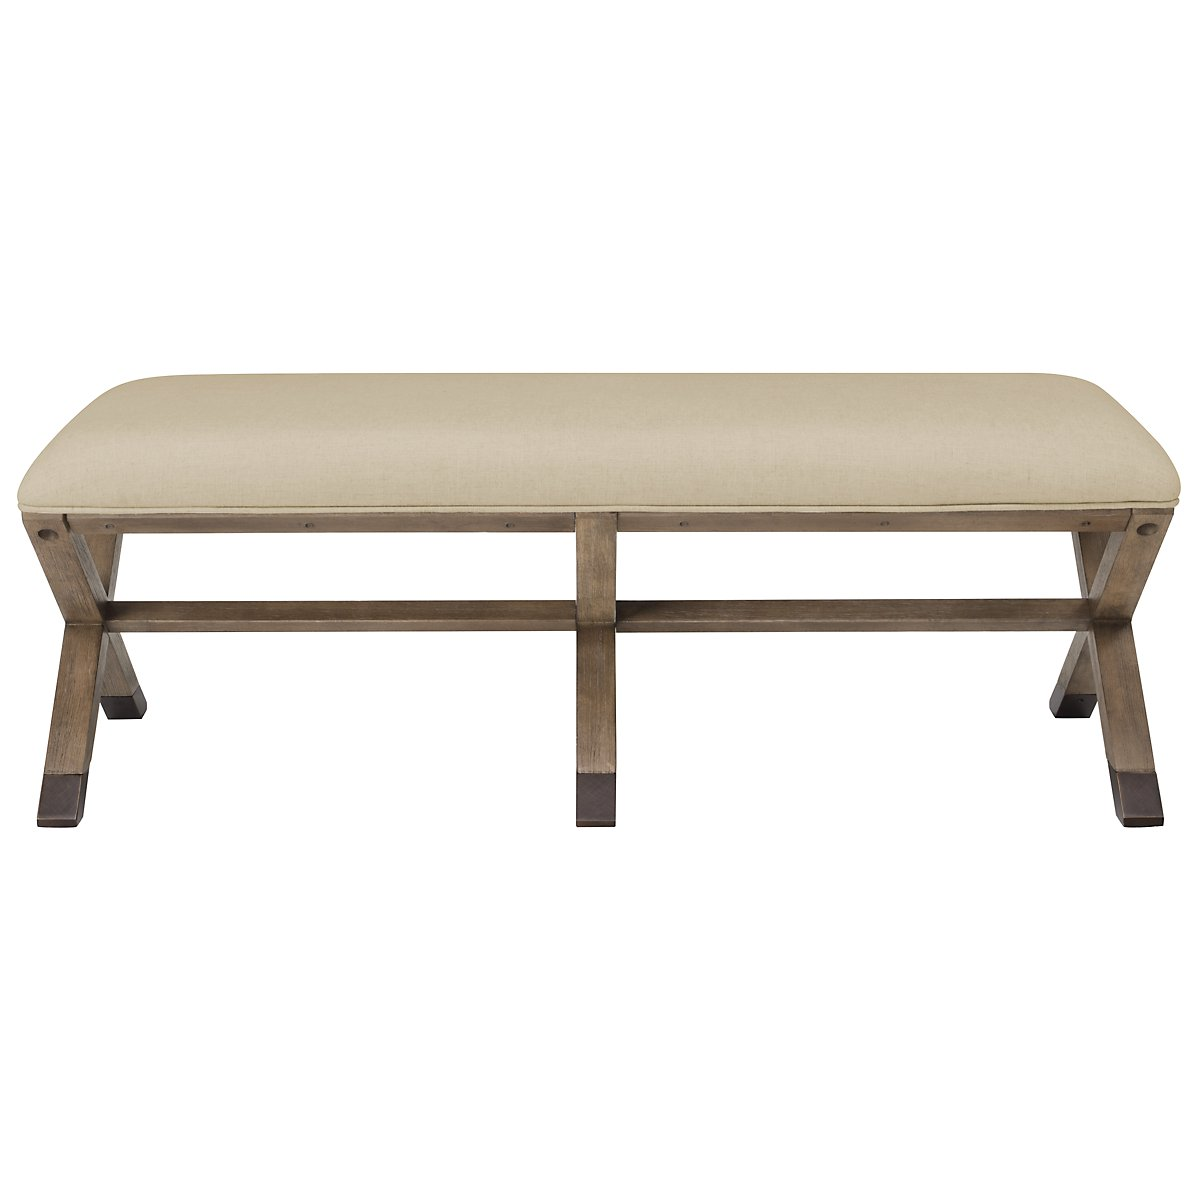 Mirabelle Light Tone Bench